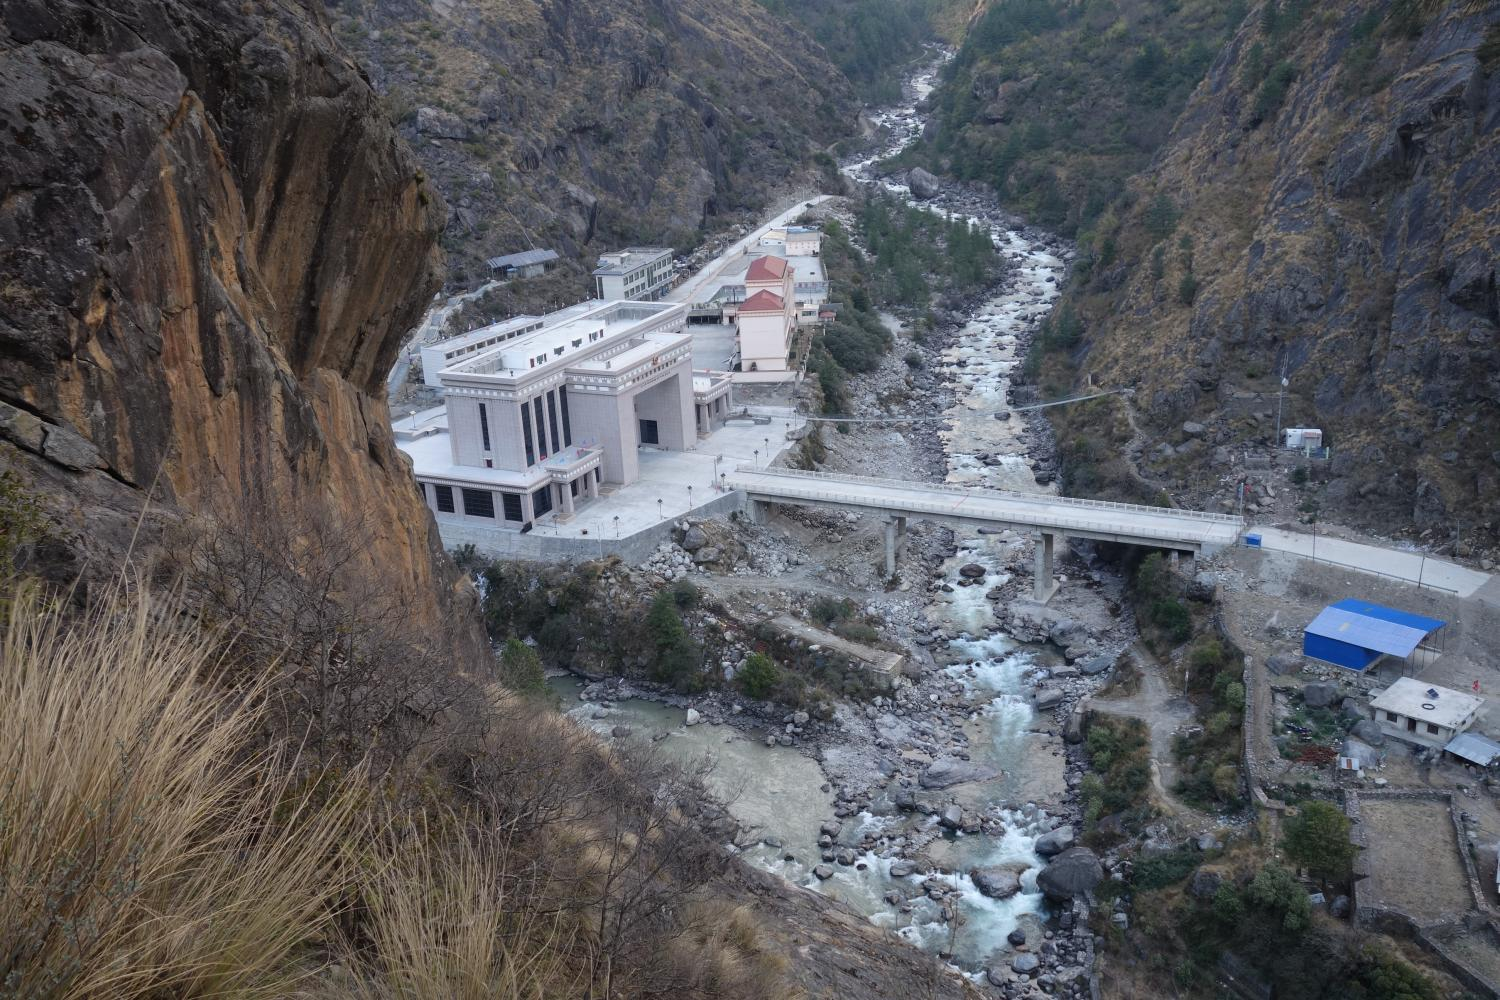 From above, the new Chinese gatehouse on the Kyirong-side dwarfs the Nepali customs and immigration facilities on the Rasuwaghadi-side; the massive earthquakes of April and May 2015 devastated facilities on both sides of the border